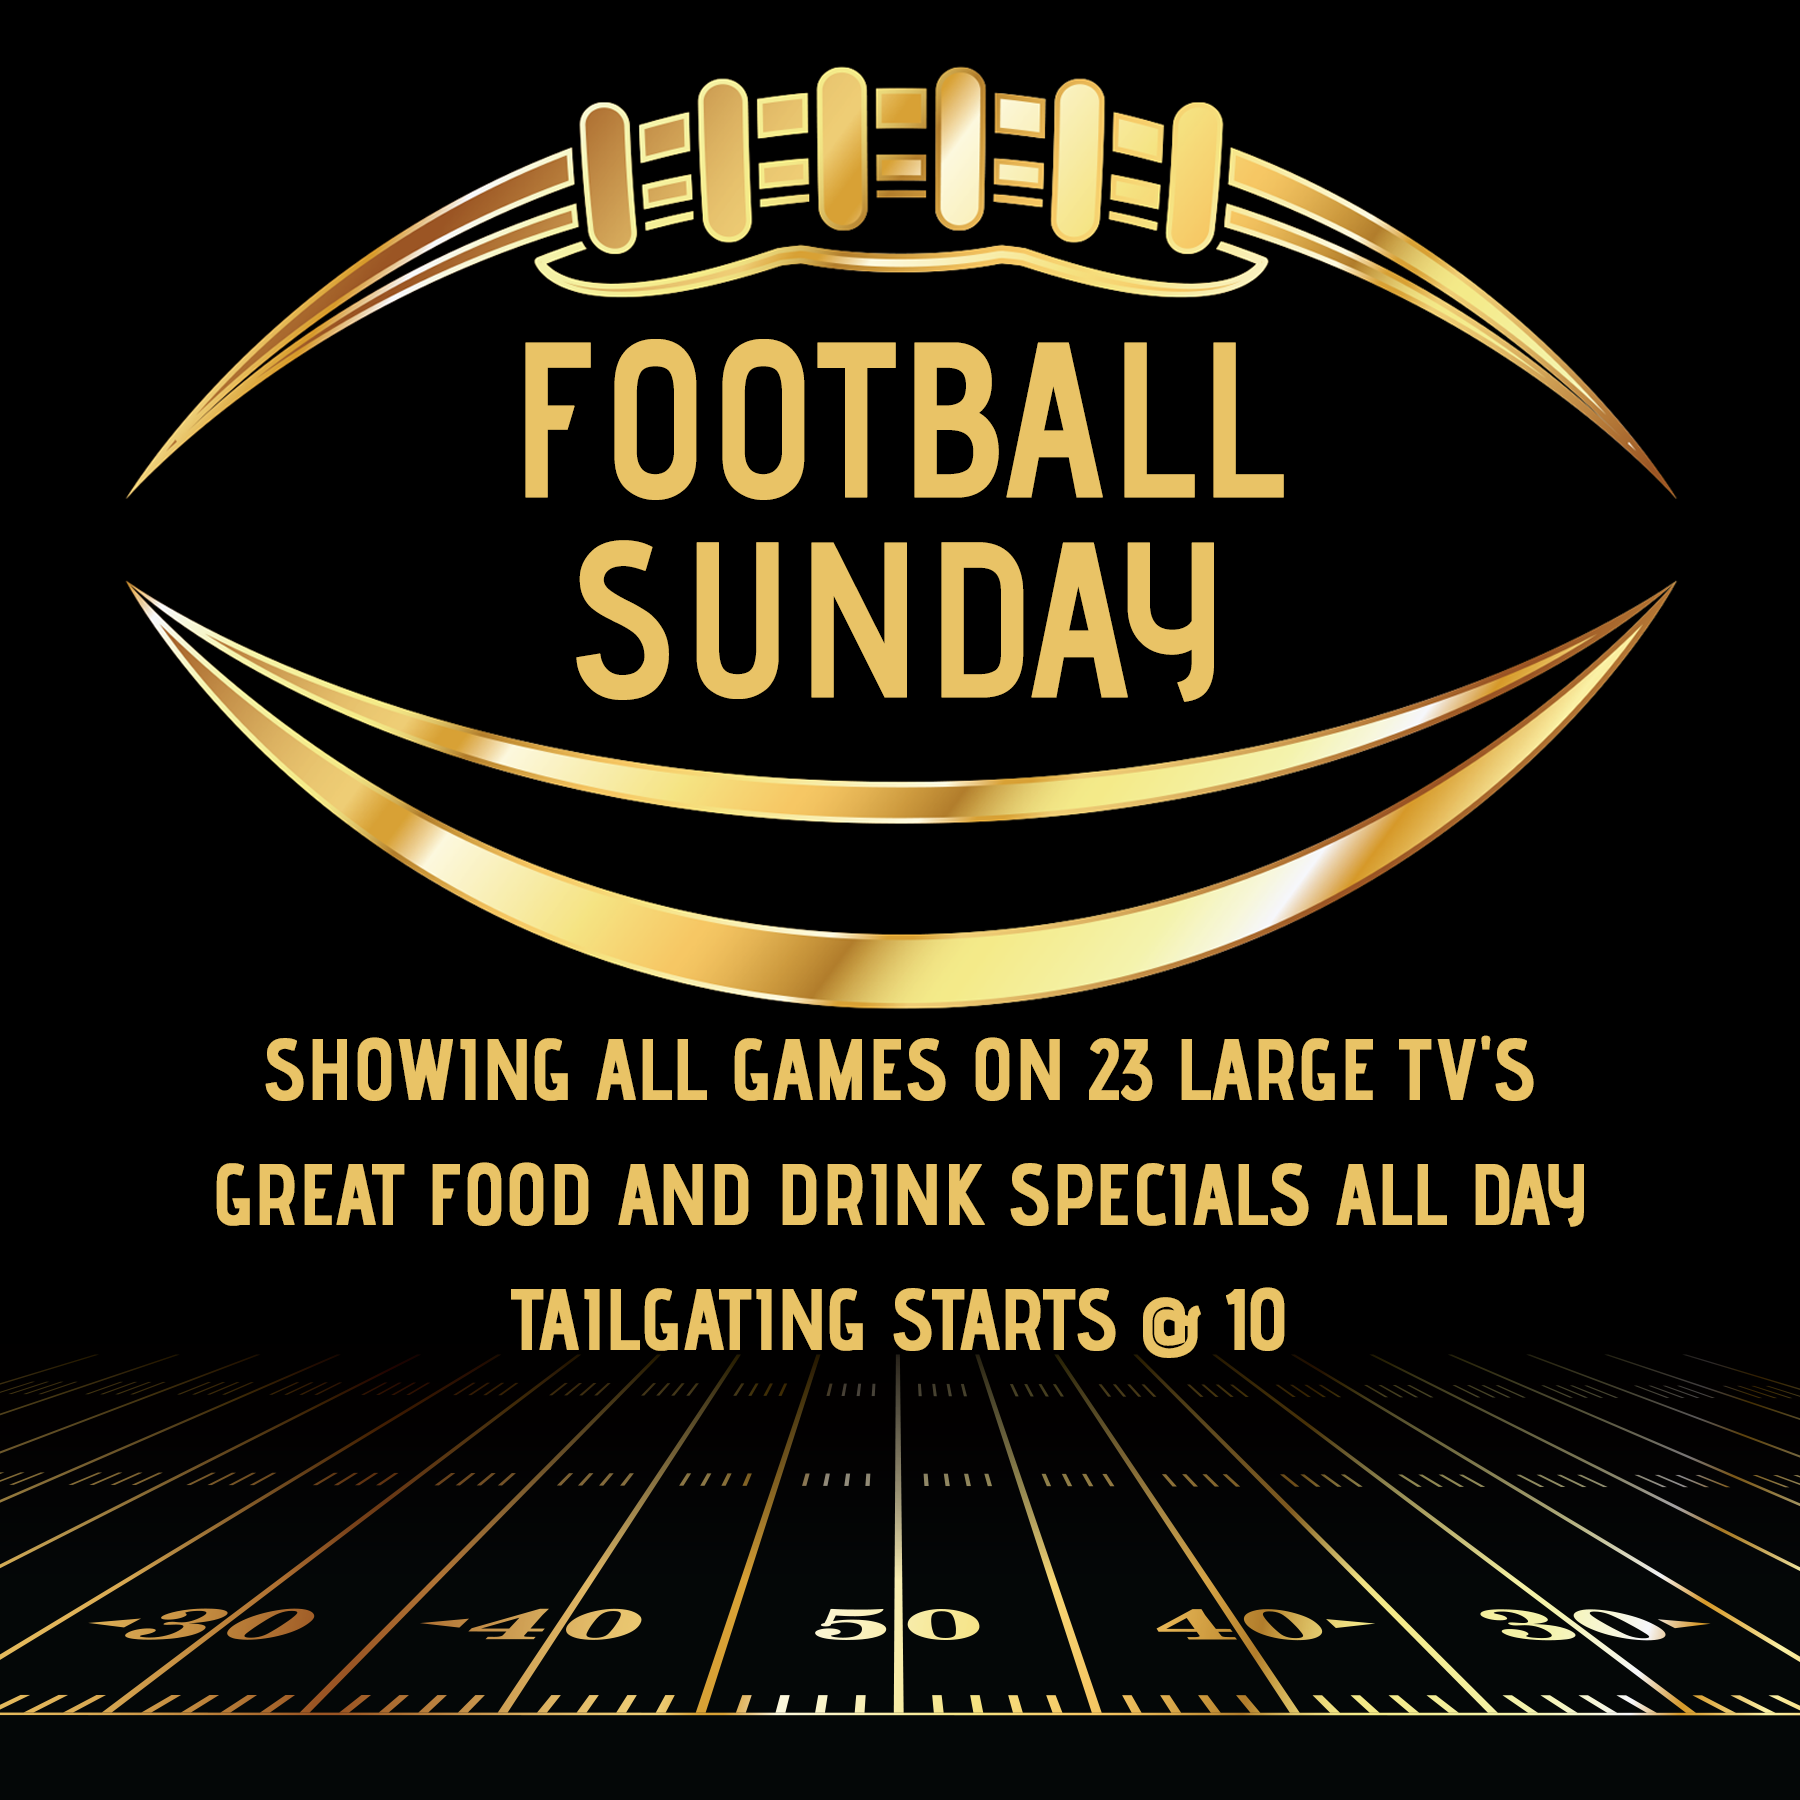 Football Sunday. Showing all games on 23 large TV's. Great food and drink specials all day. Tailgating starts at 10 pm.